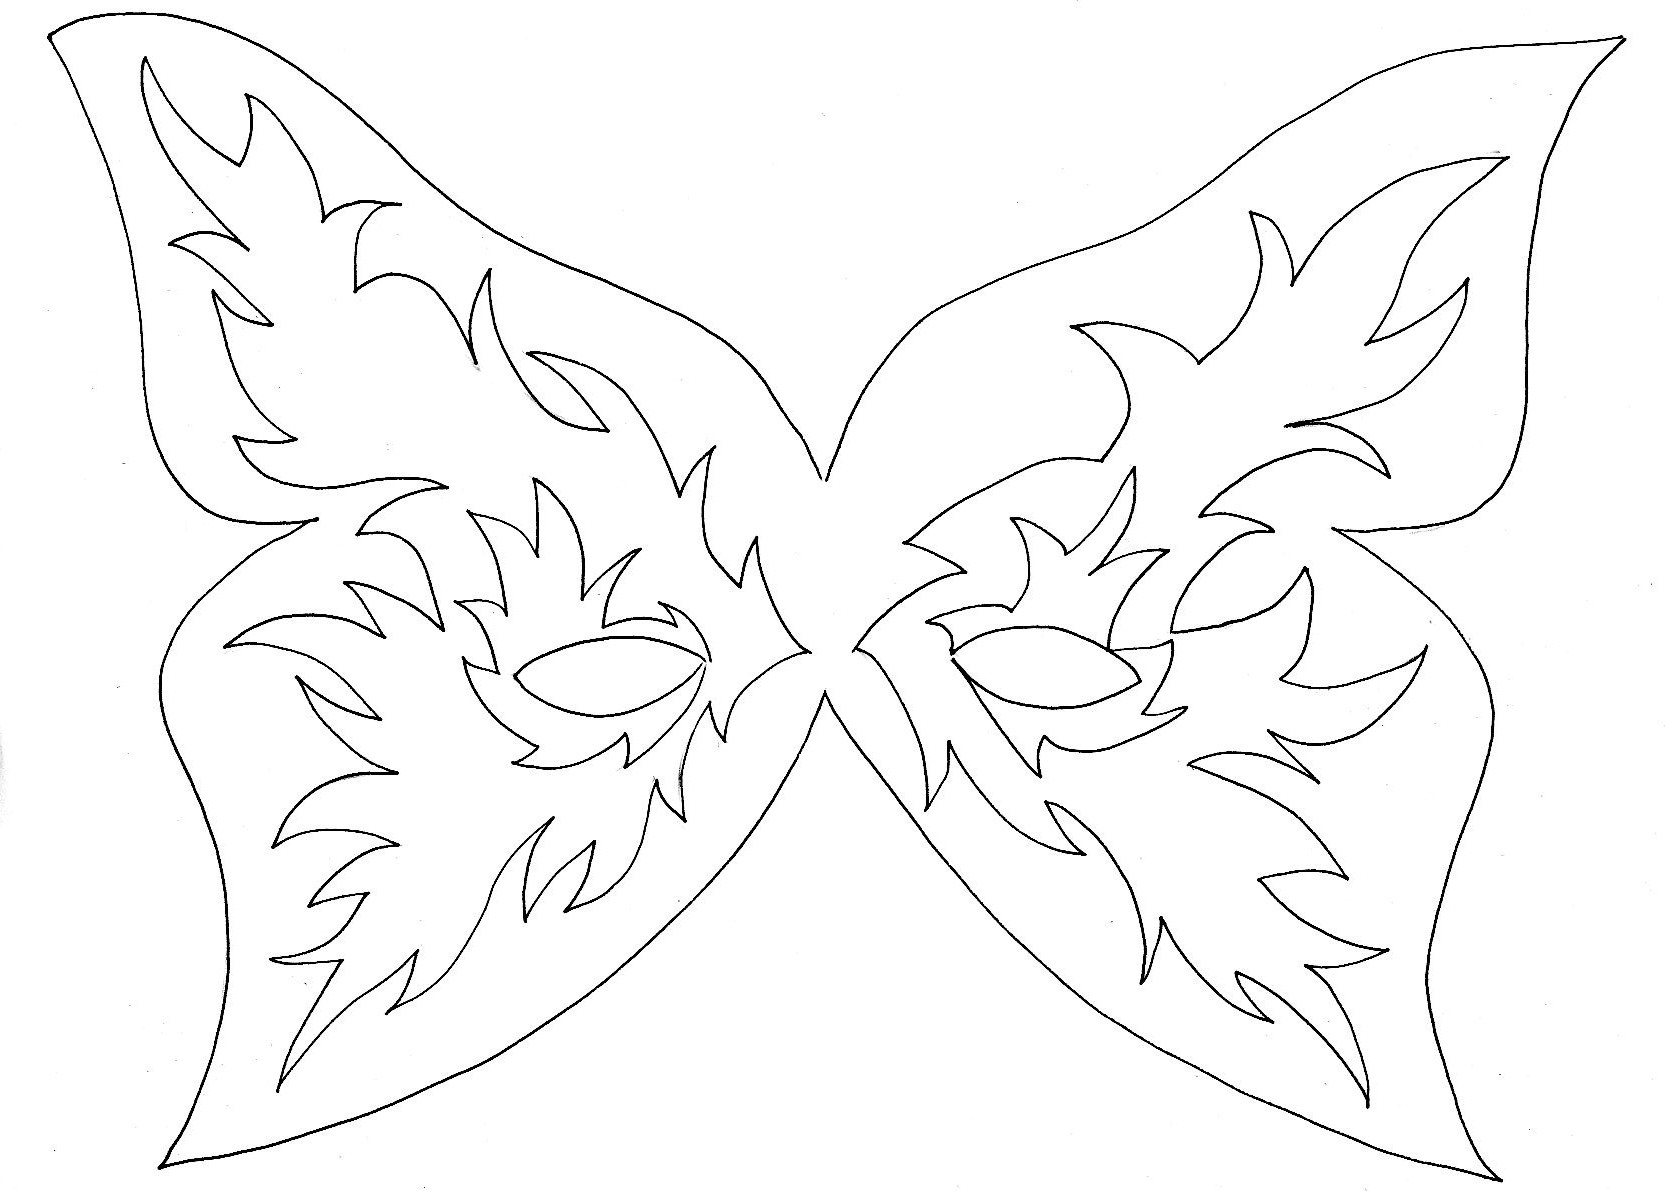 Drama Mask Coloring Pages At Getdrawings